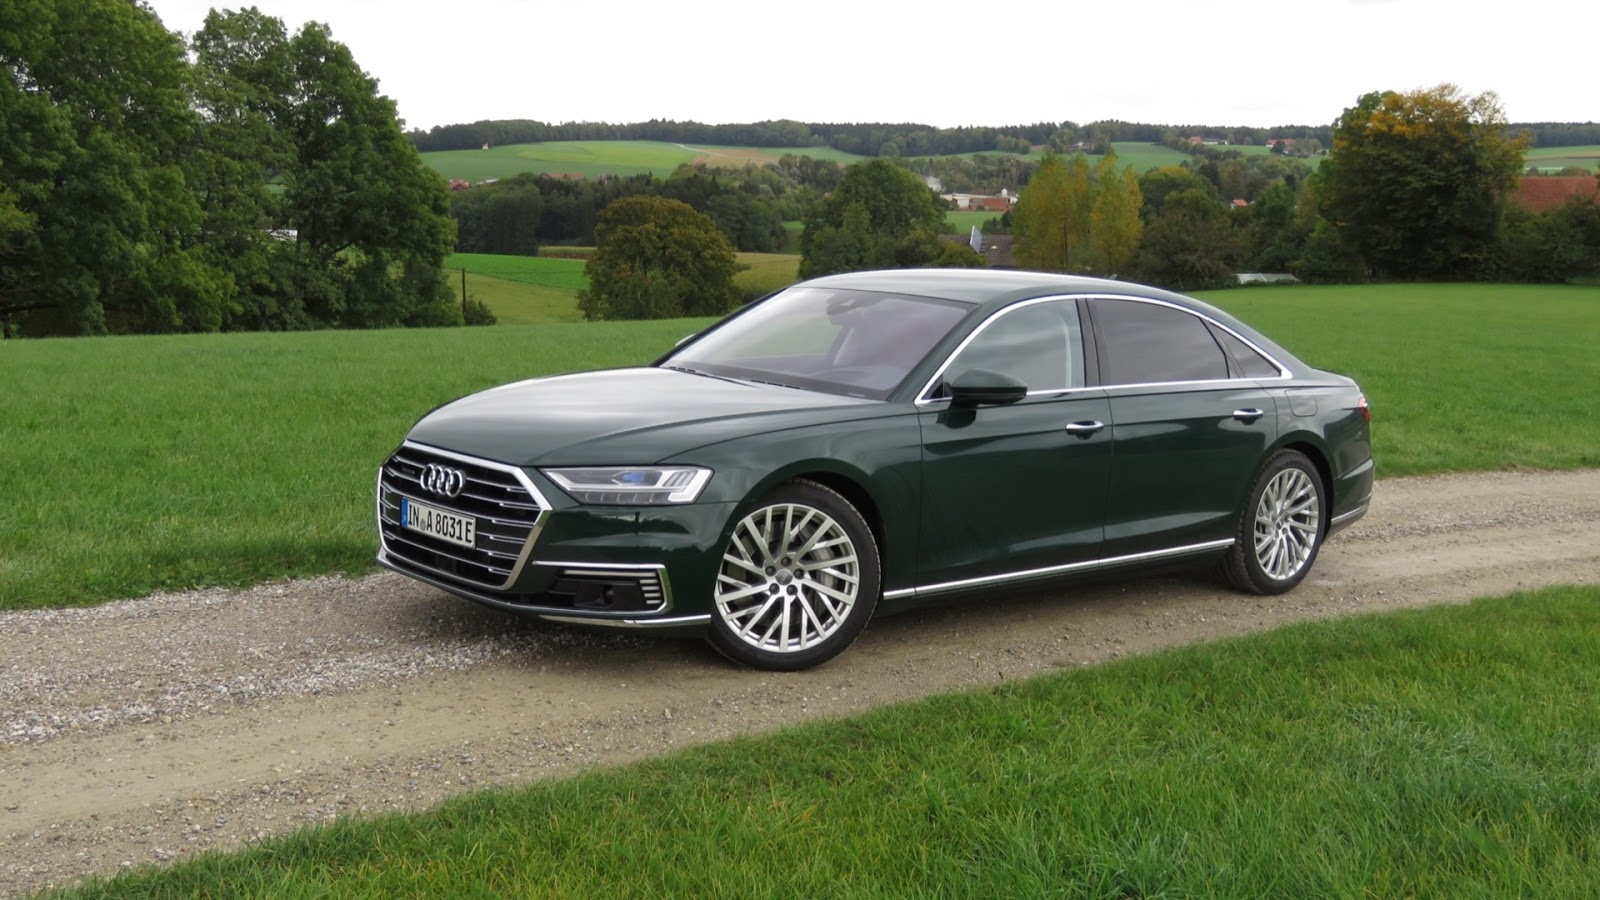 2020 audi a8 review, specs, price - carshighlight